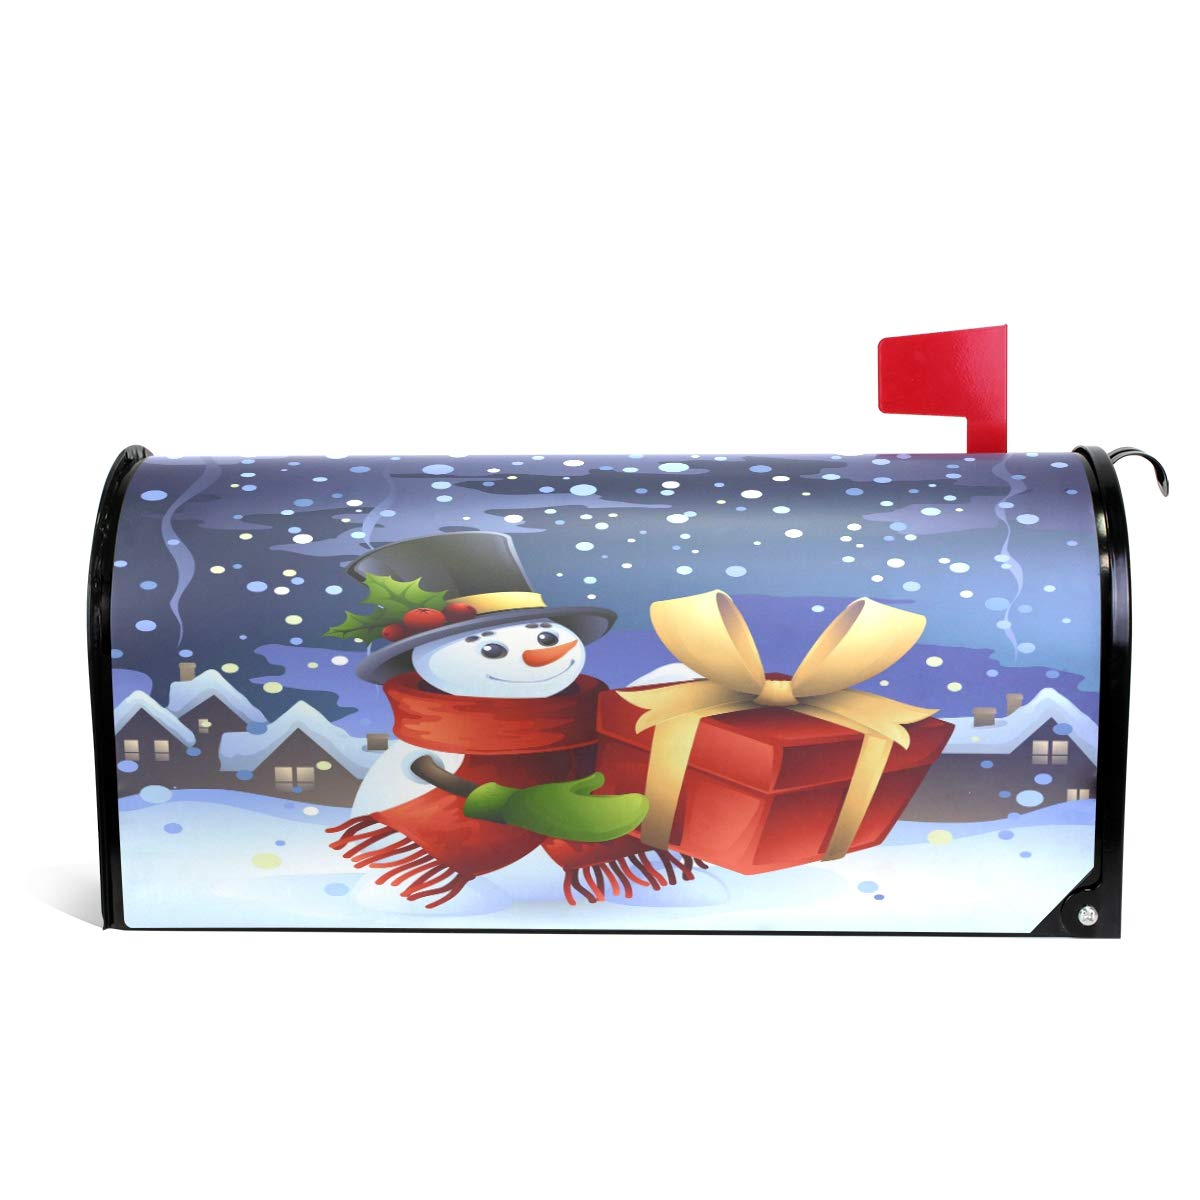 """Naanle Christmas Holiday Magnetic Mailbox Cover, Snowman Mailbox Wrap Home Decorative for Large Size 25.5""""(L) x 20.8""""(W)"""